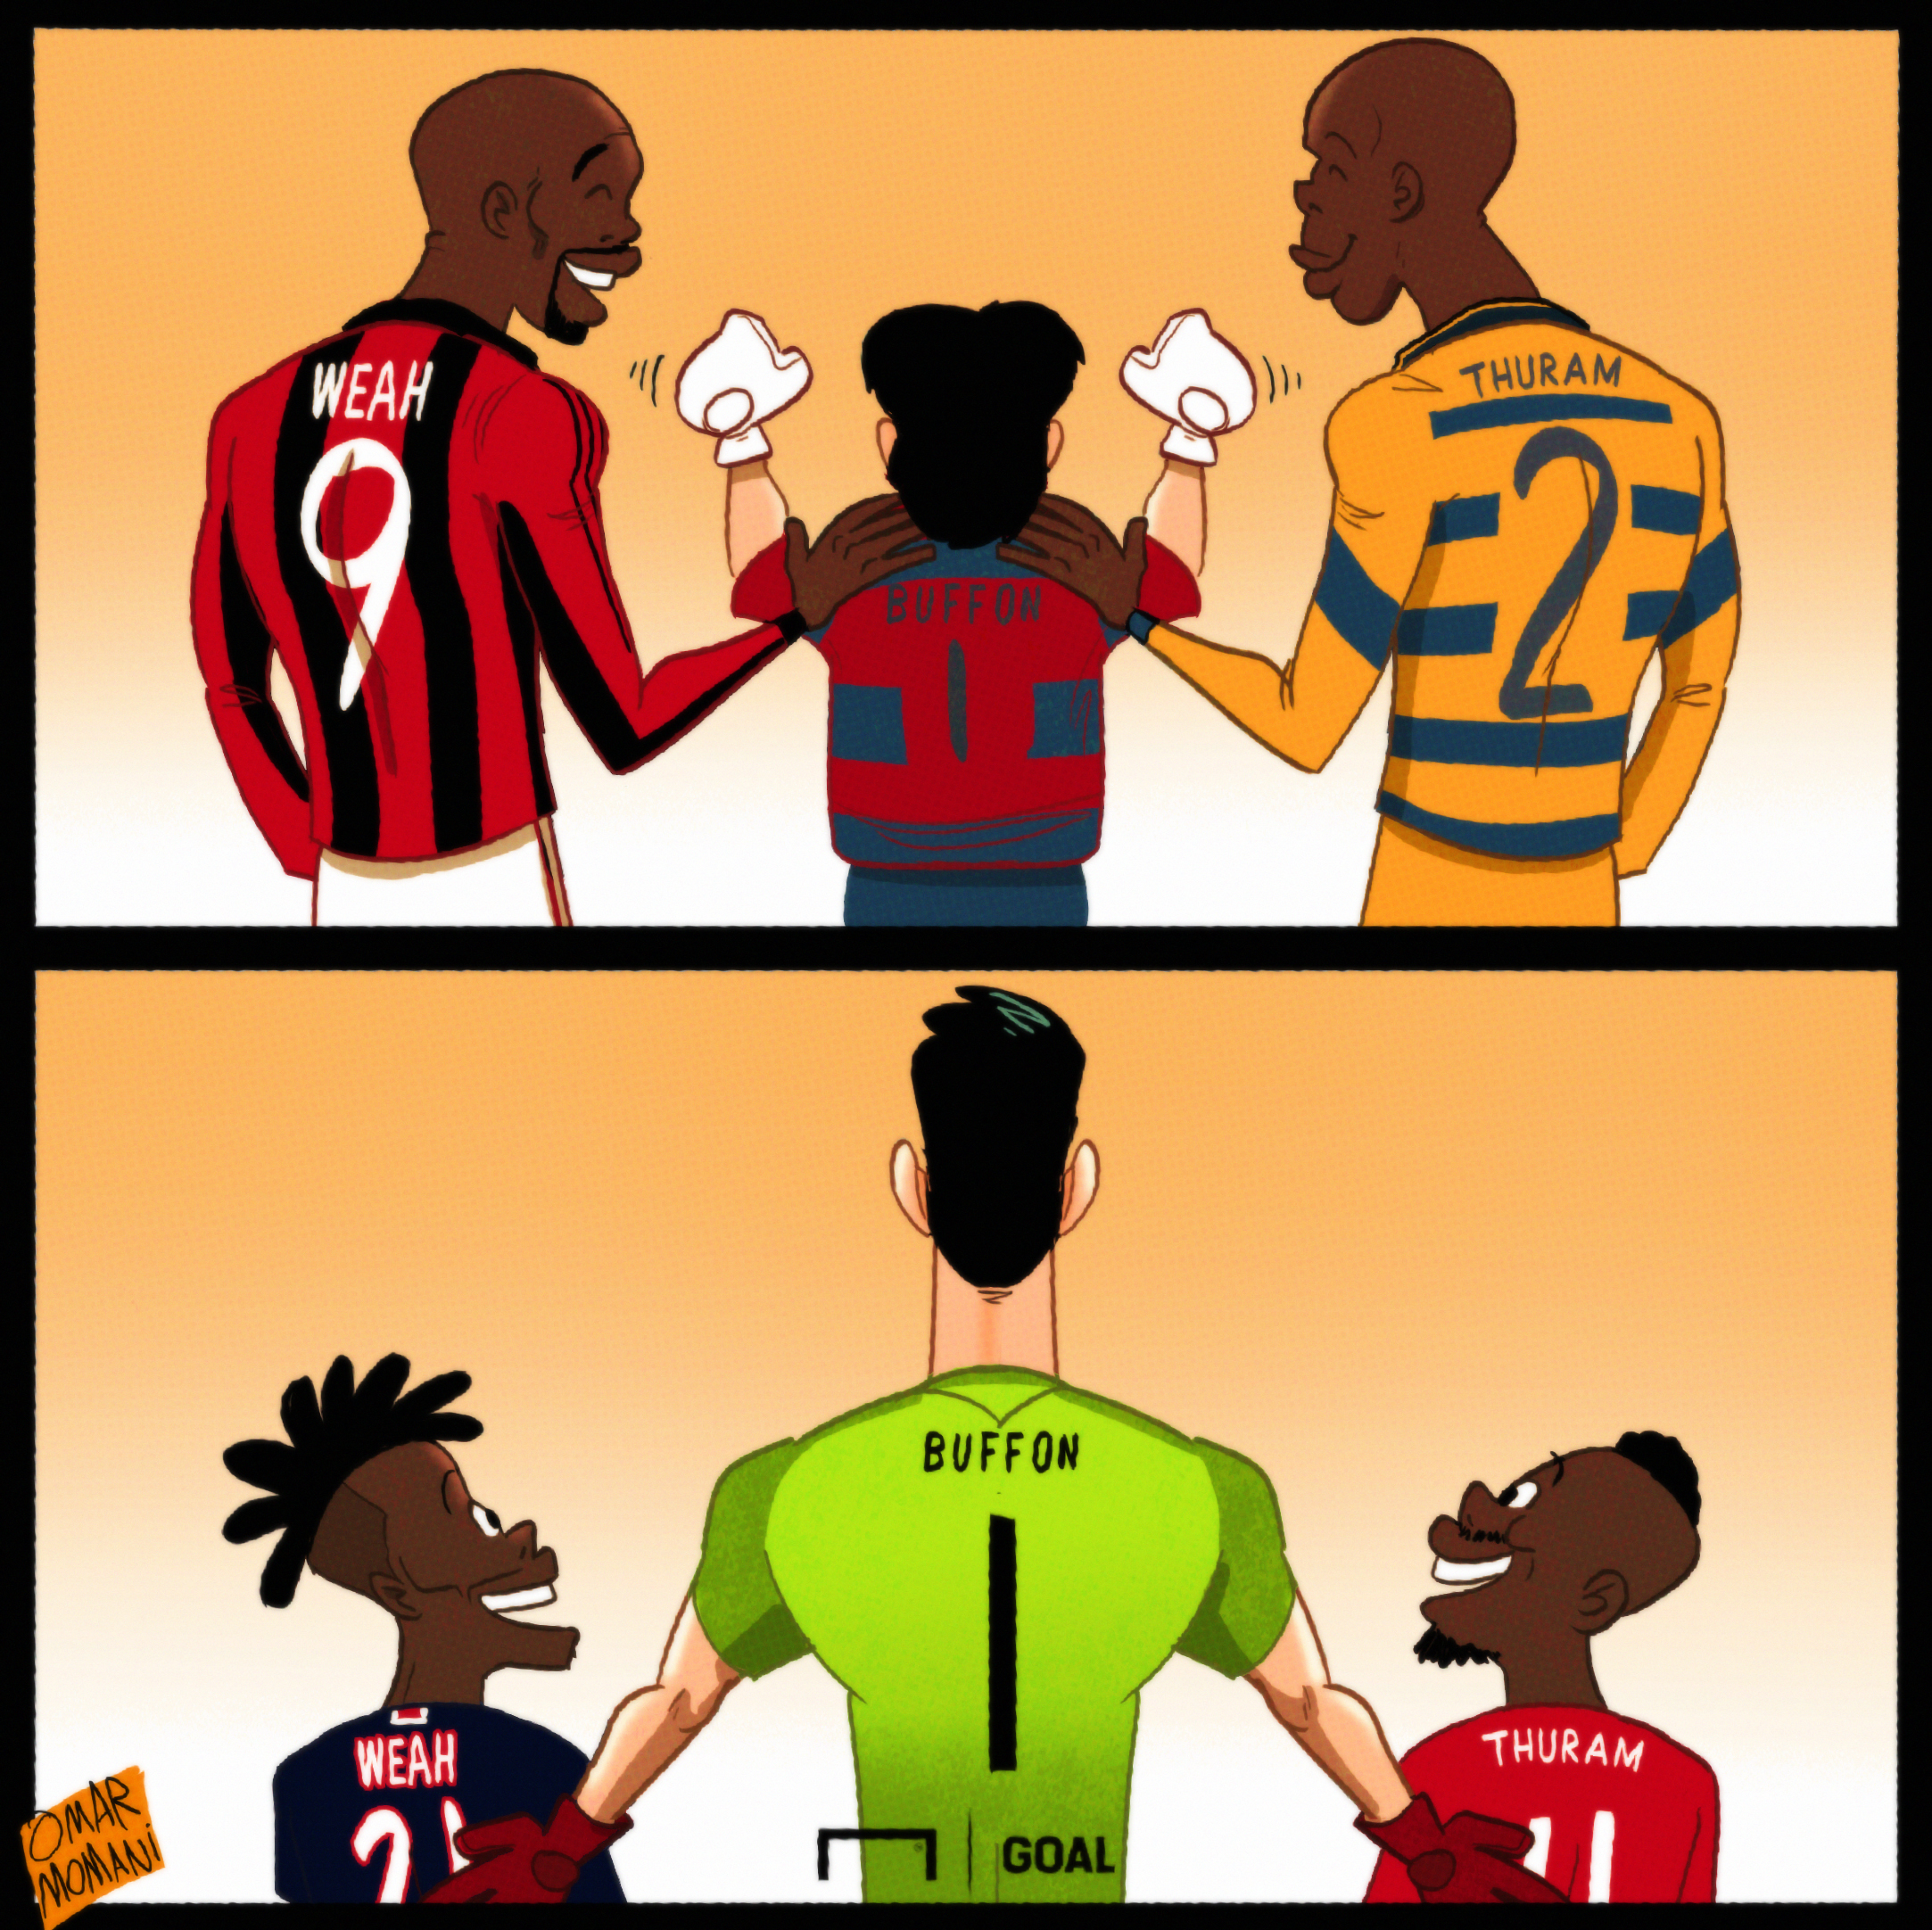 Cartoon Buffon, Thuram and Weah